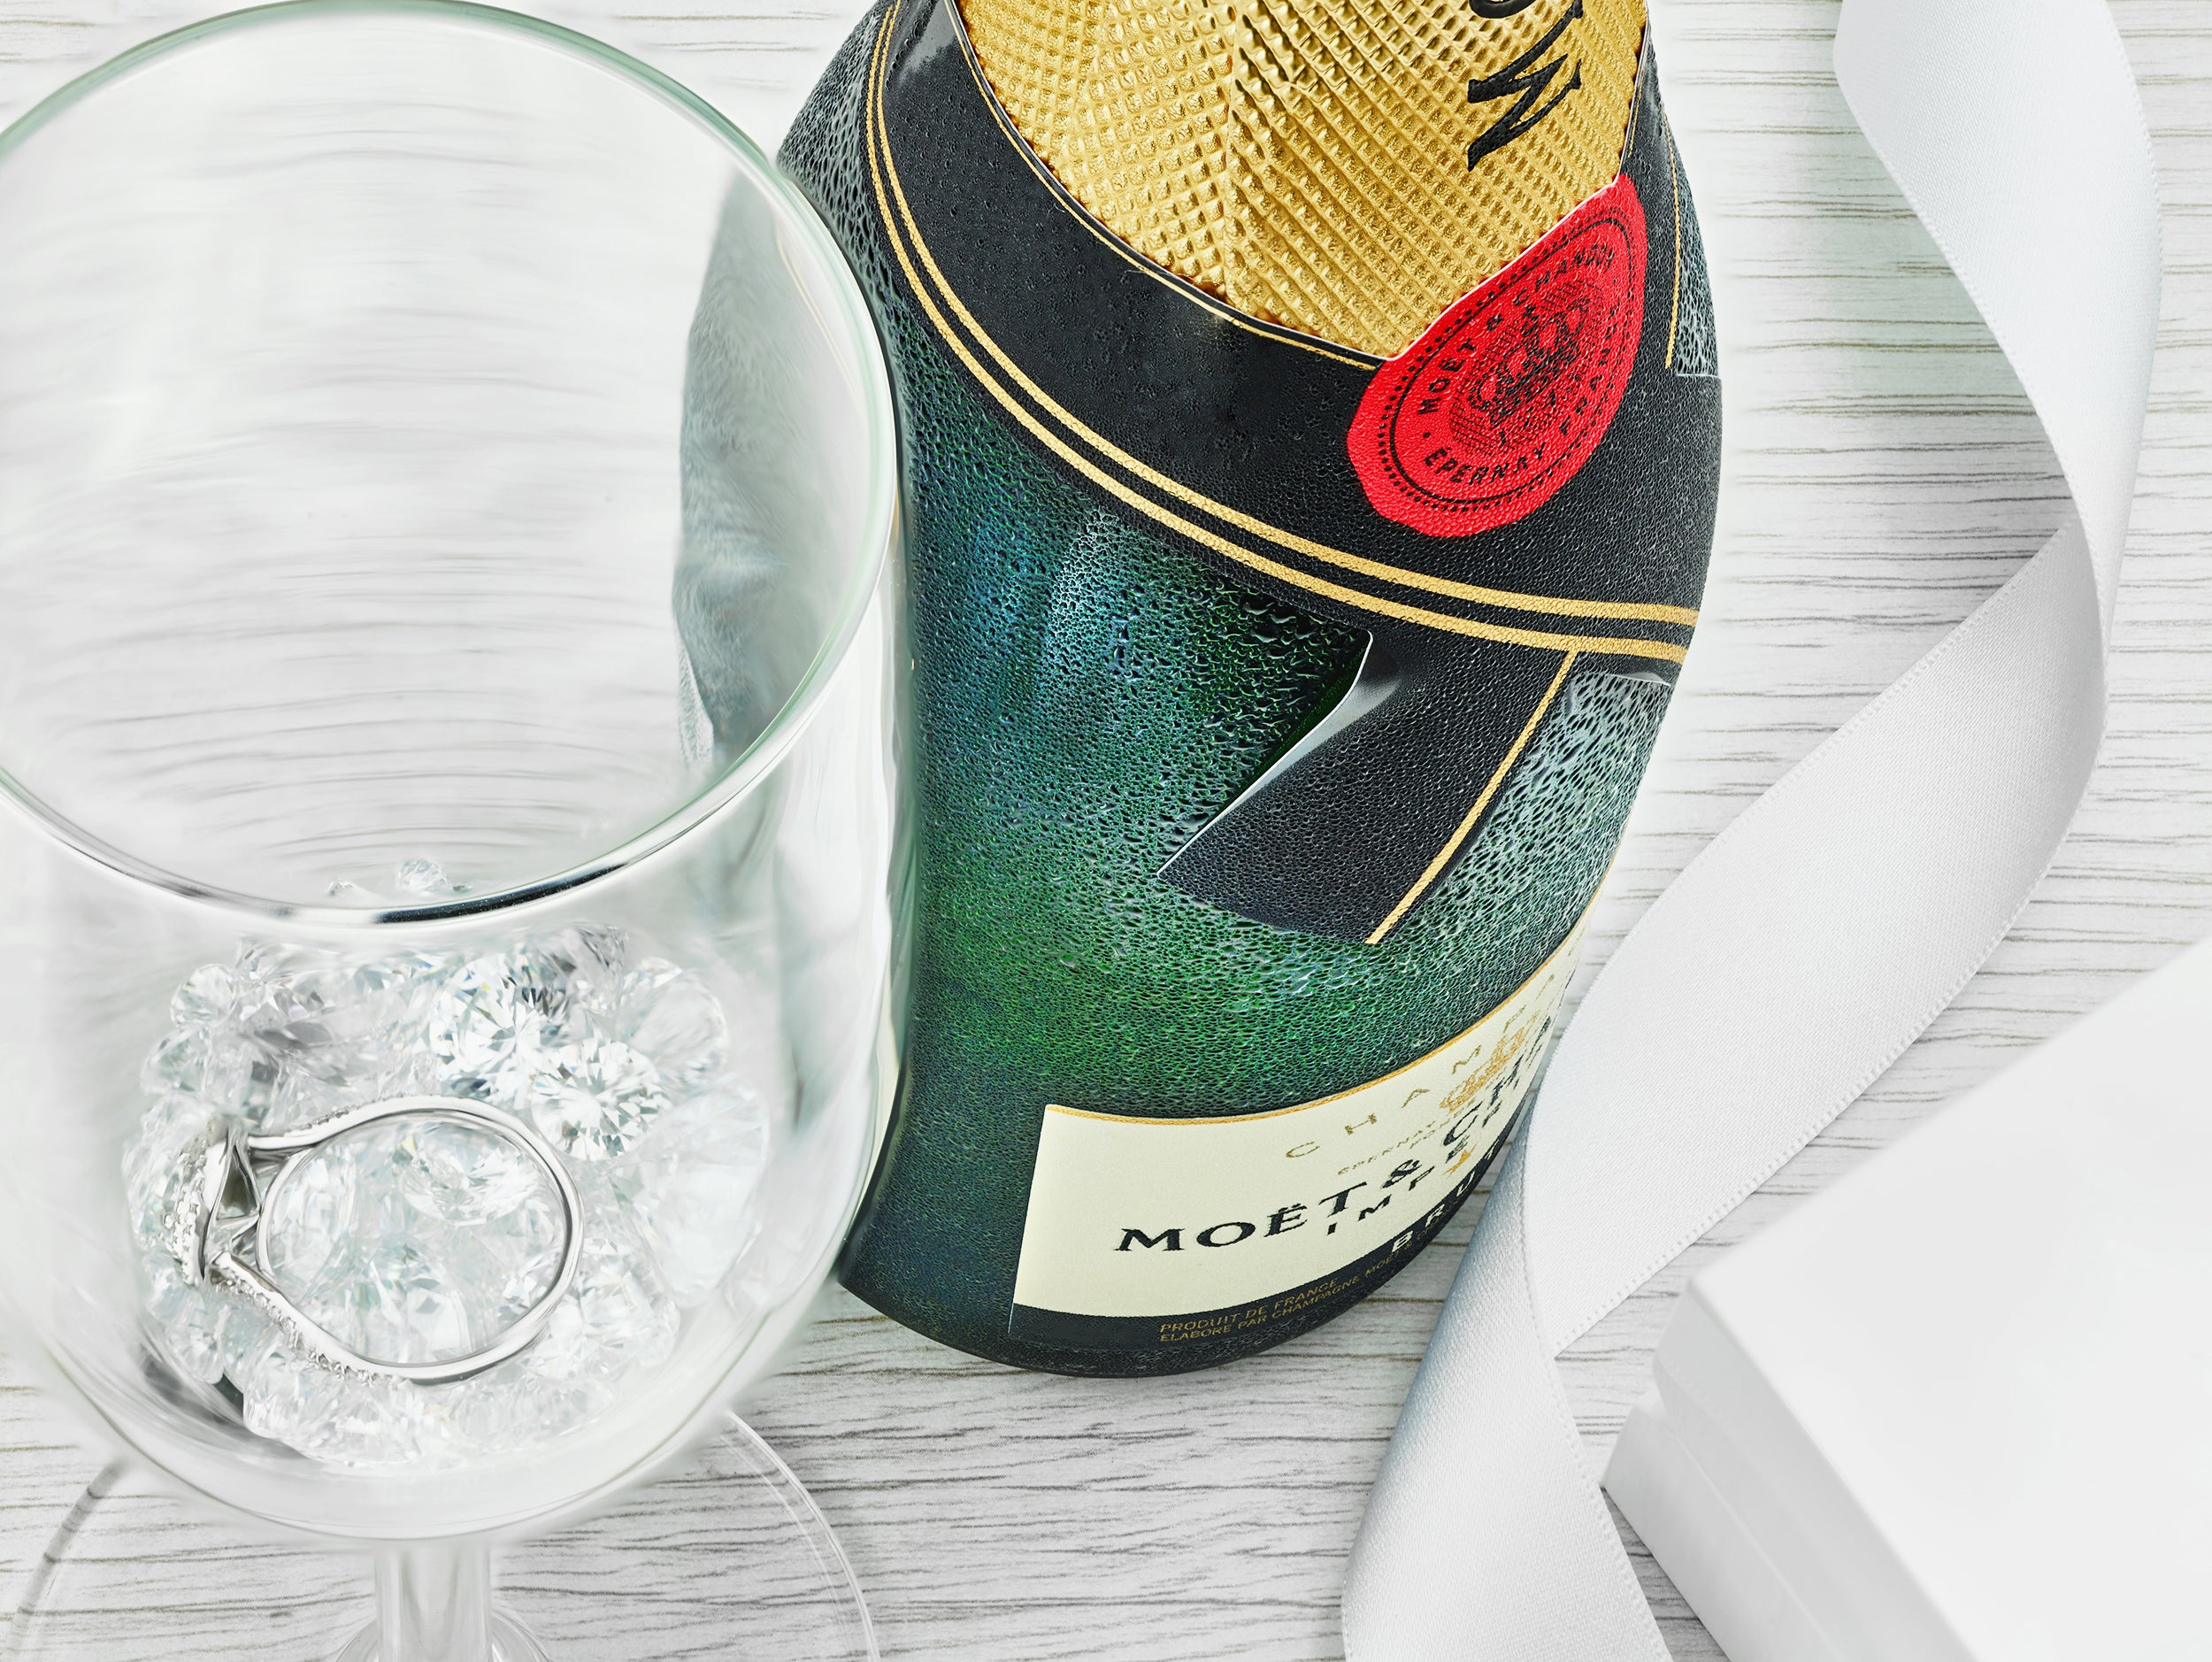 Image of champagne bottle and diamonds